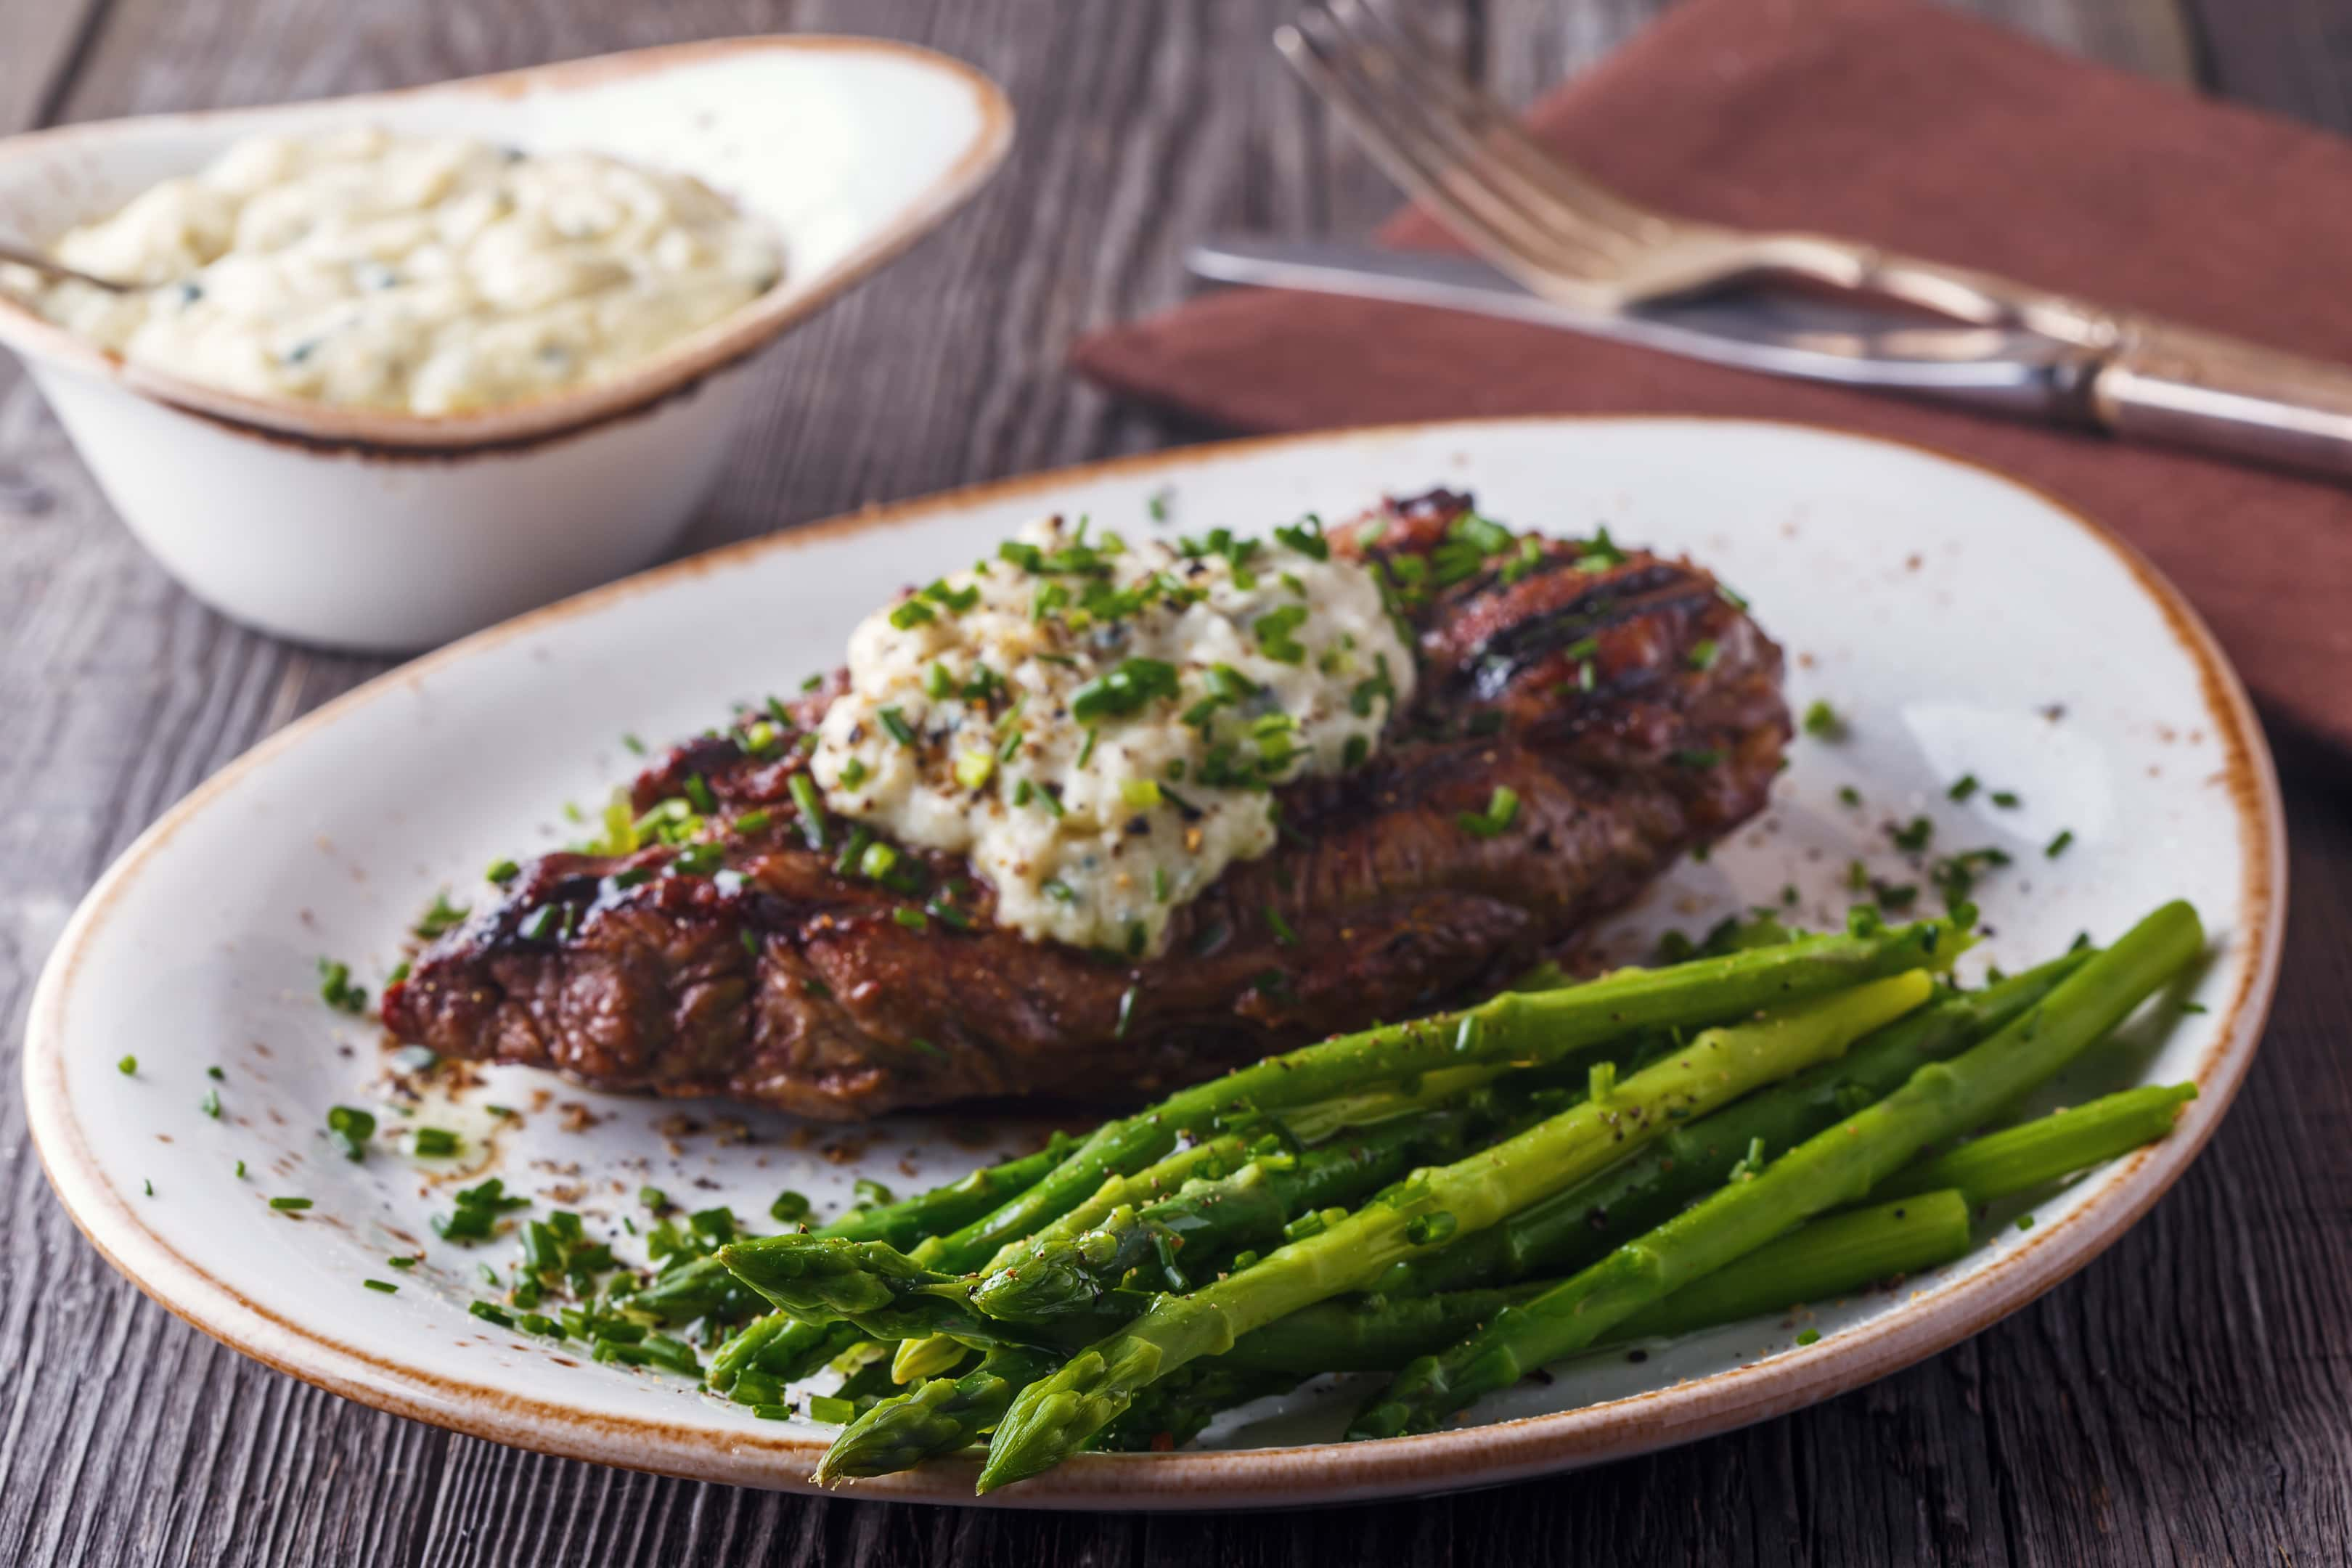 Xavier steak with cheese sauce served with asparagus